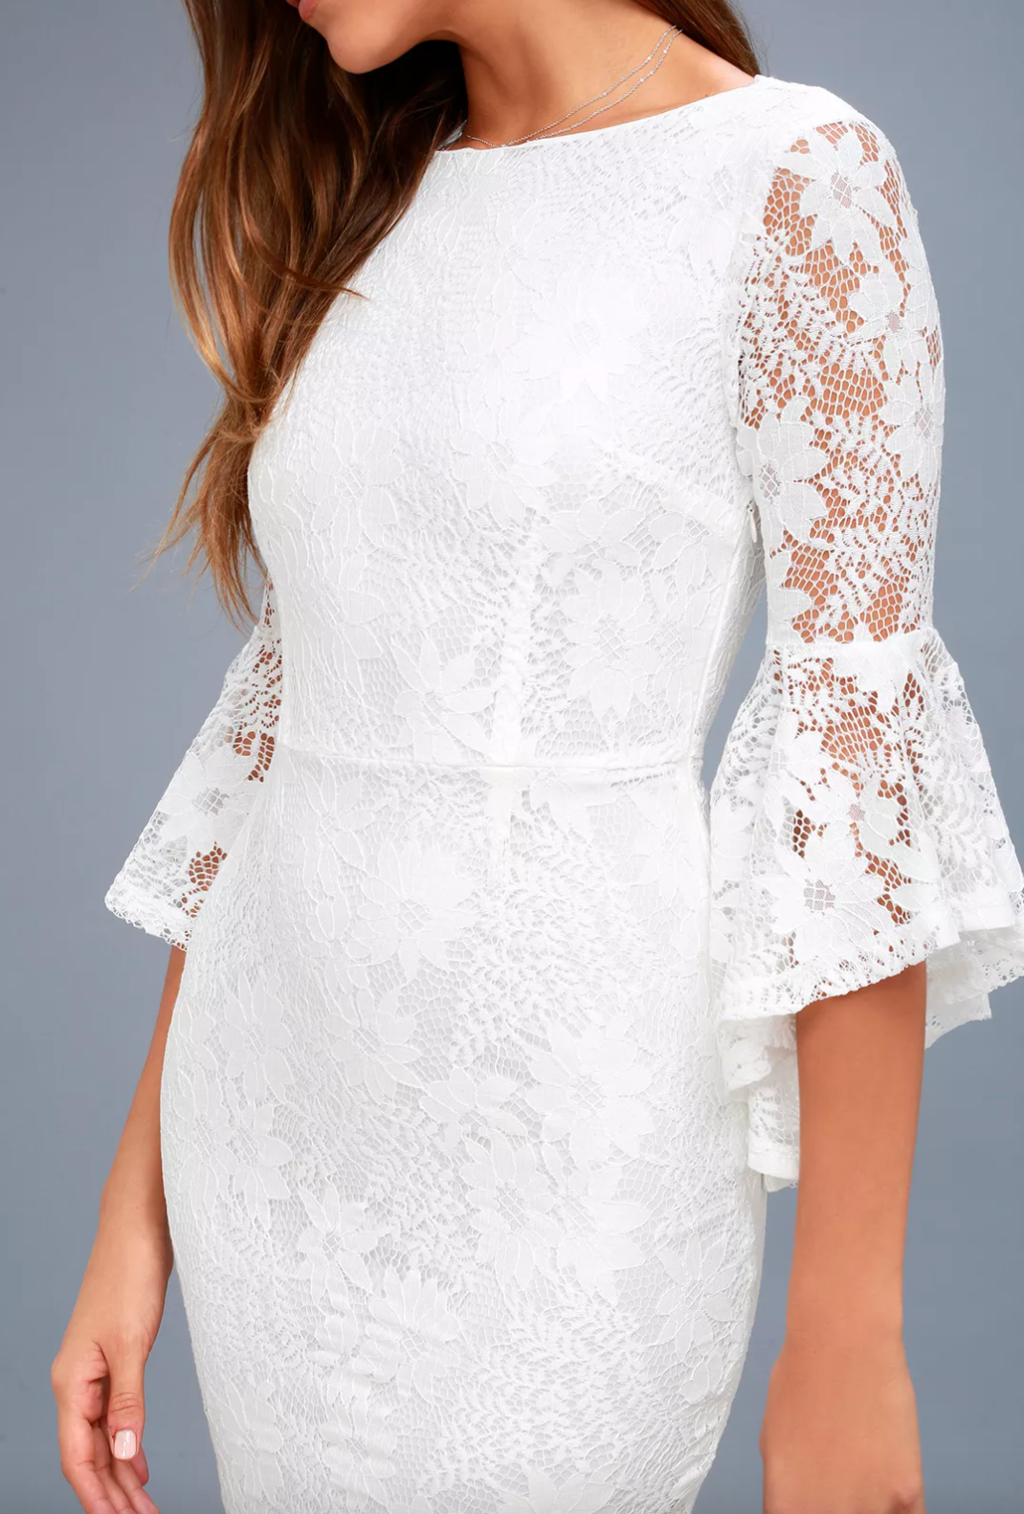 White lace bell sleeve bodycon dress from Lulu's